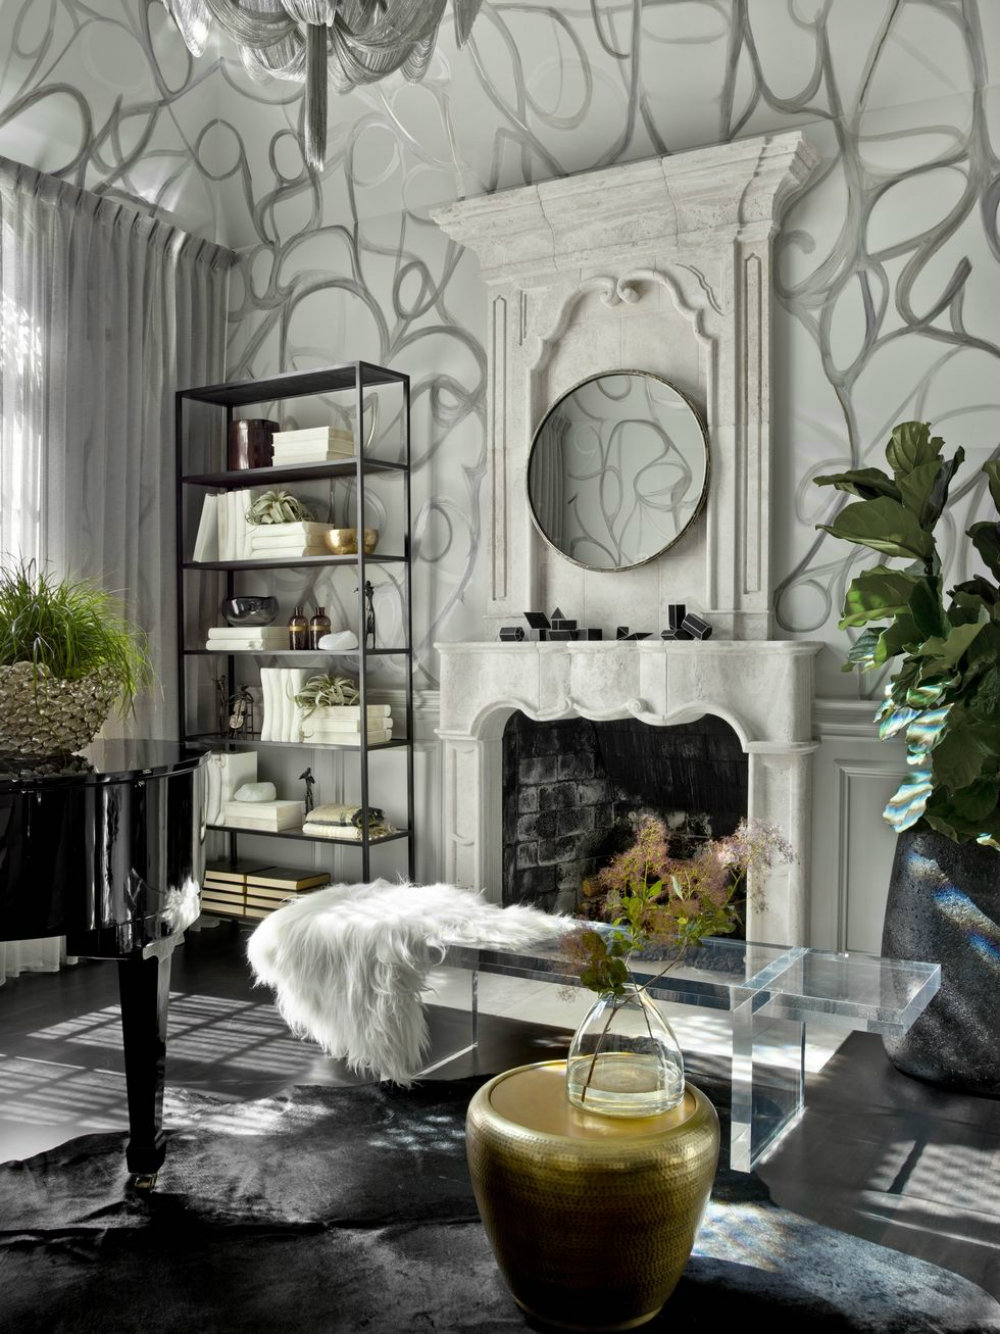 A Glamorous And Edgy Chicago Home